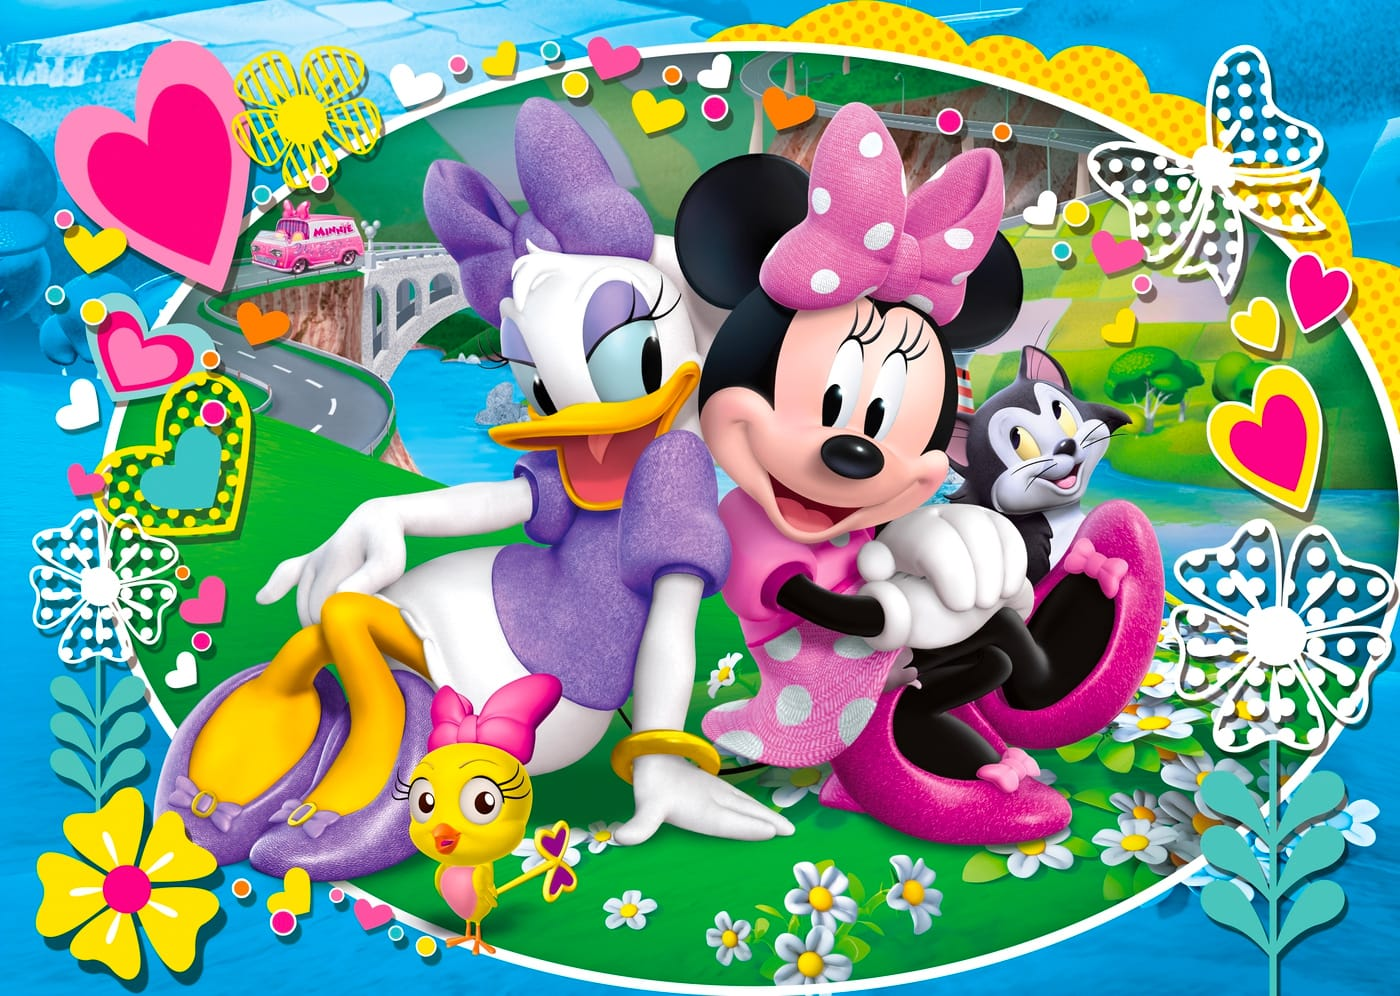 Clementoni 23708 Puzzle Minnie Happy Helperer